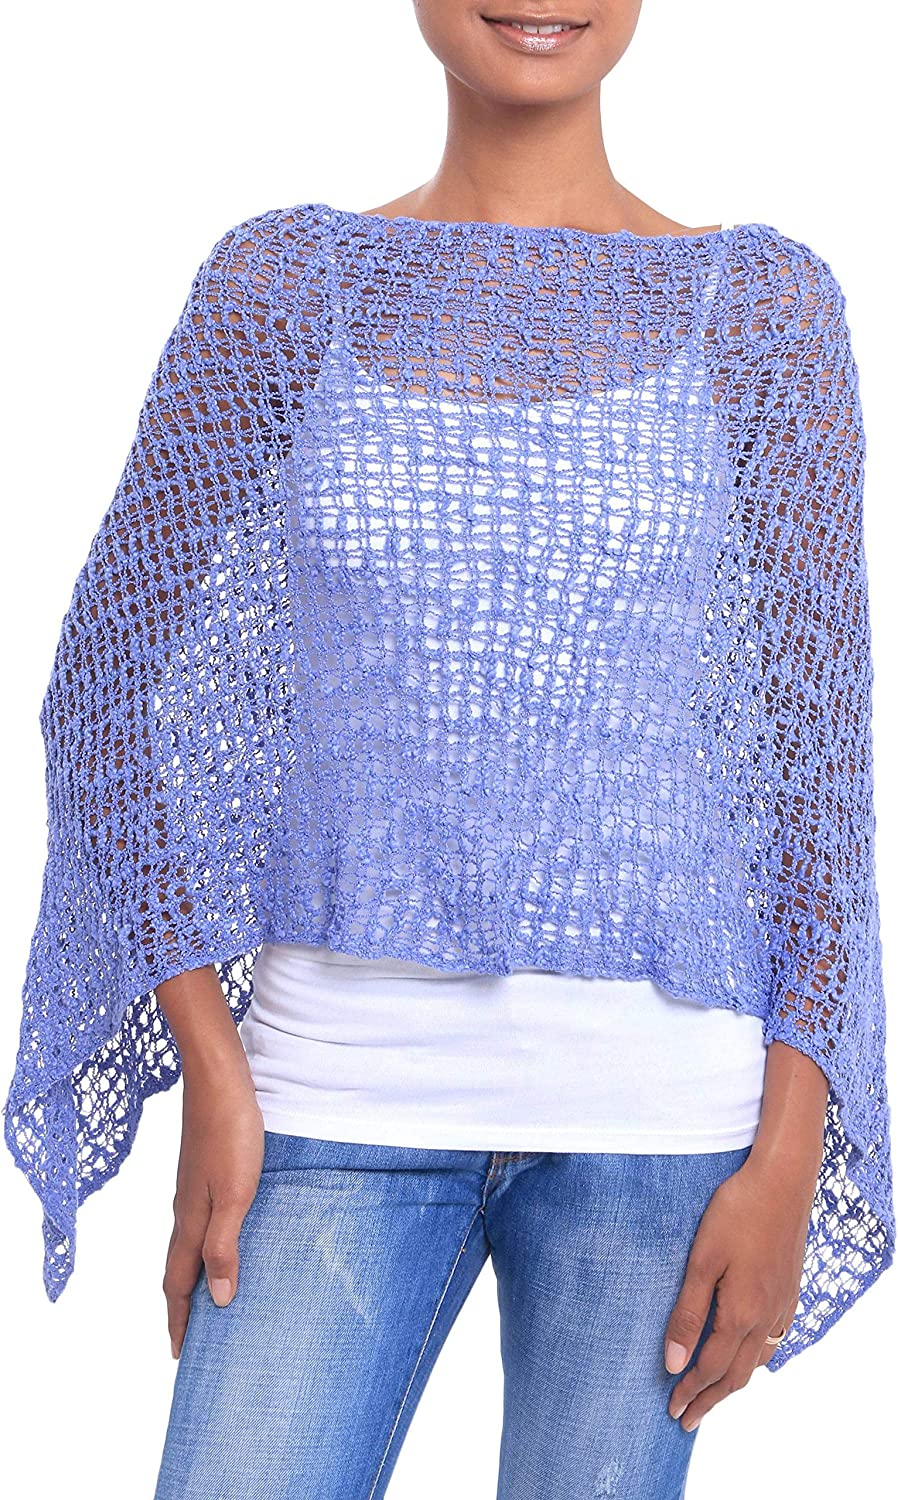 NOVICA Blue 100% Cotton Spasm price Poncho Shade in Directly managed store Blue' Sanur Cadet